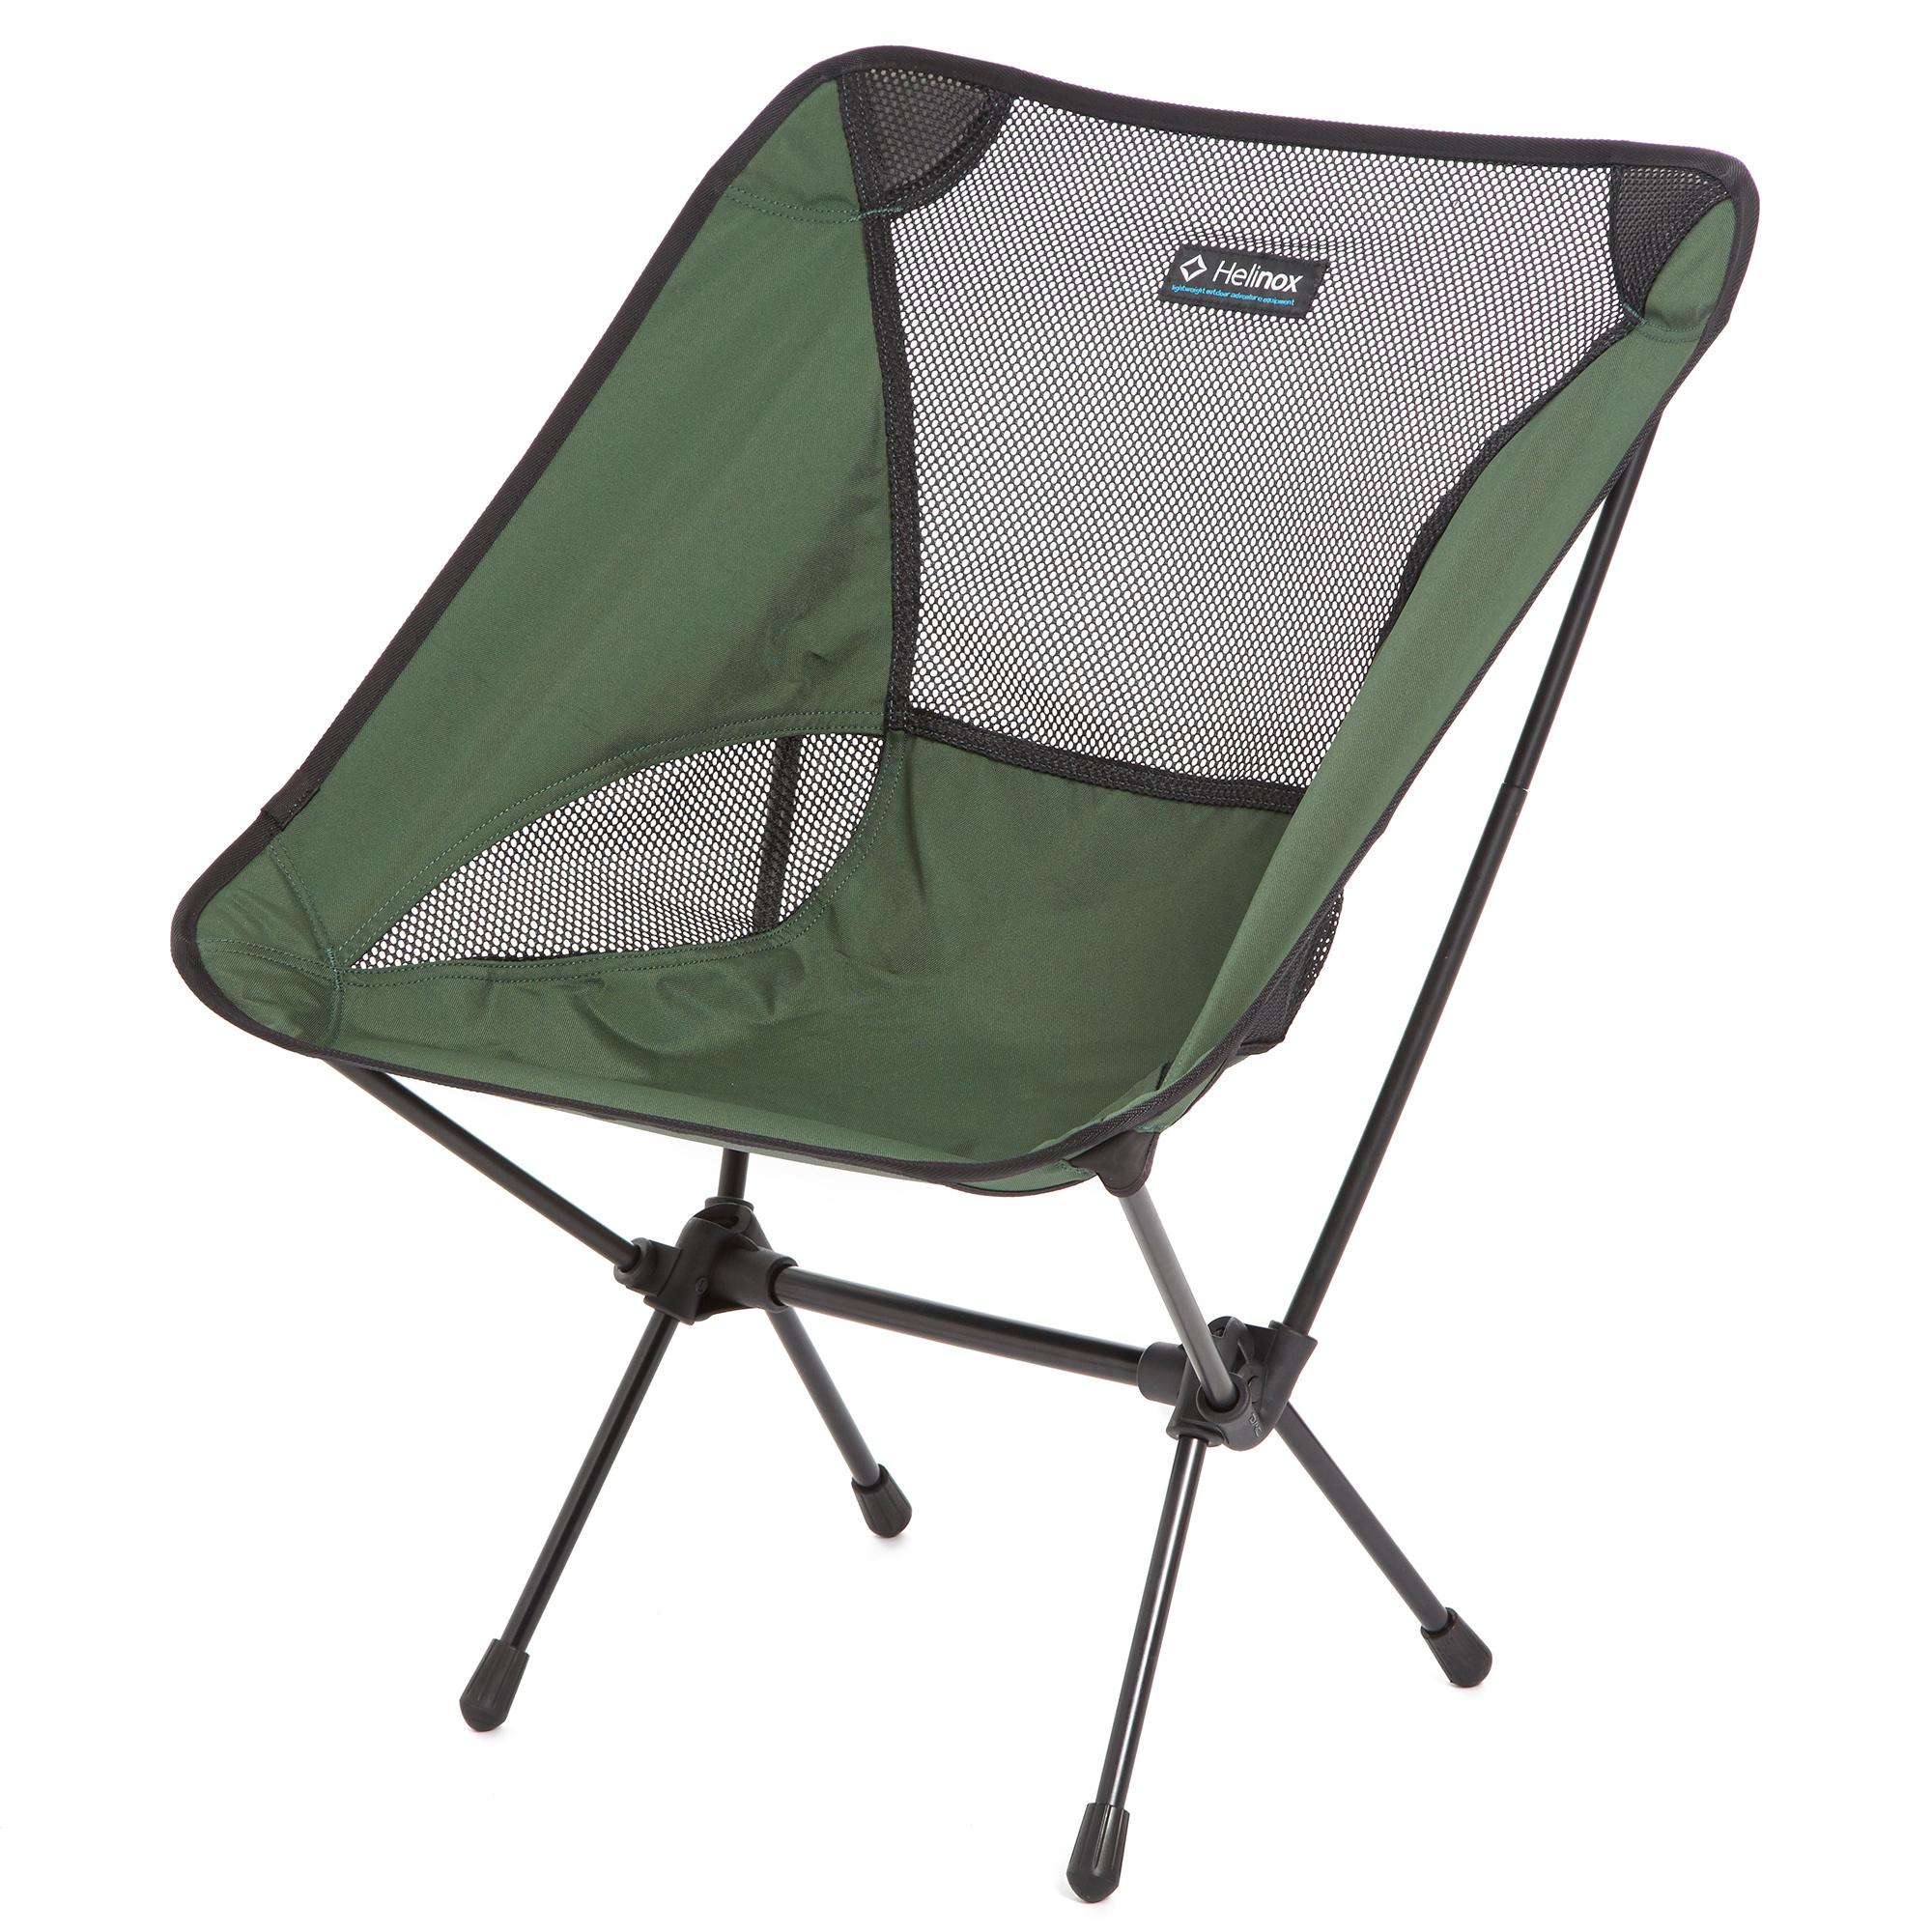 Helinox Chair e Tent Buyer pare tent prices